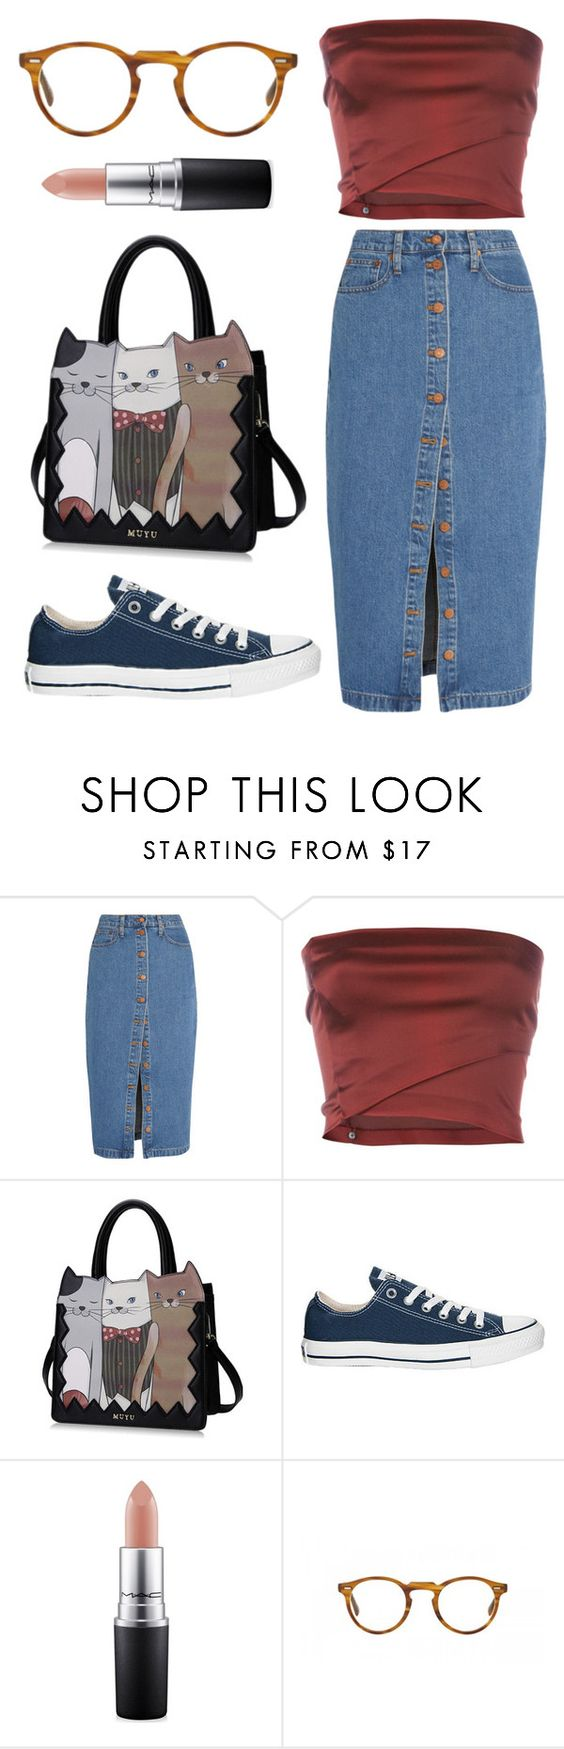 """""""Untitled #245"""" by dion-balalas ❤ liked on Polyvore featuring Madewell, Romeo Gigli, Converse, MAC Cosmetics and Oliver Peoples"""